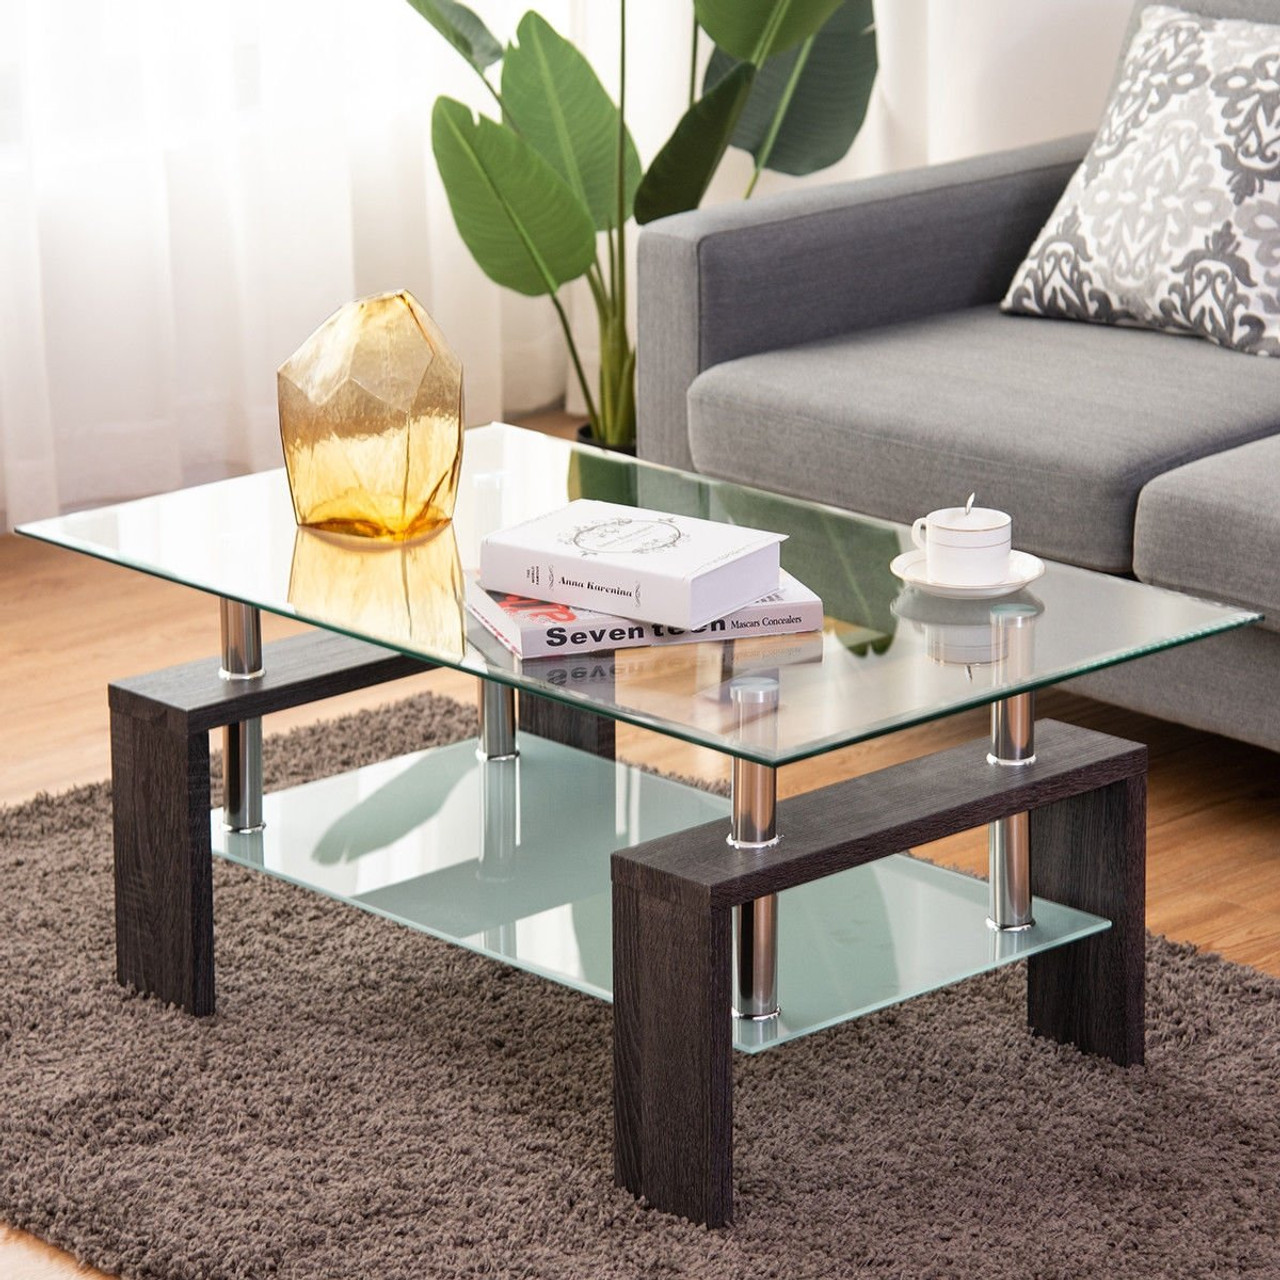 Picture of: Rectangular Tempered Glass Coffee Table With Shelf Brown Hw57279bn By Cw